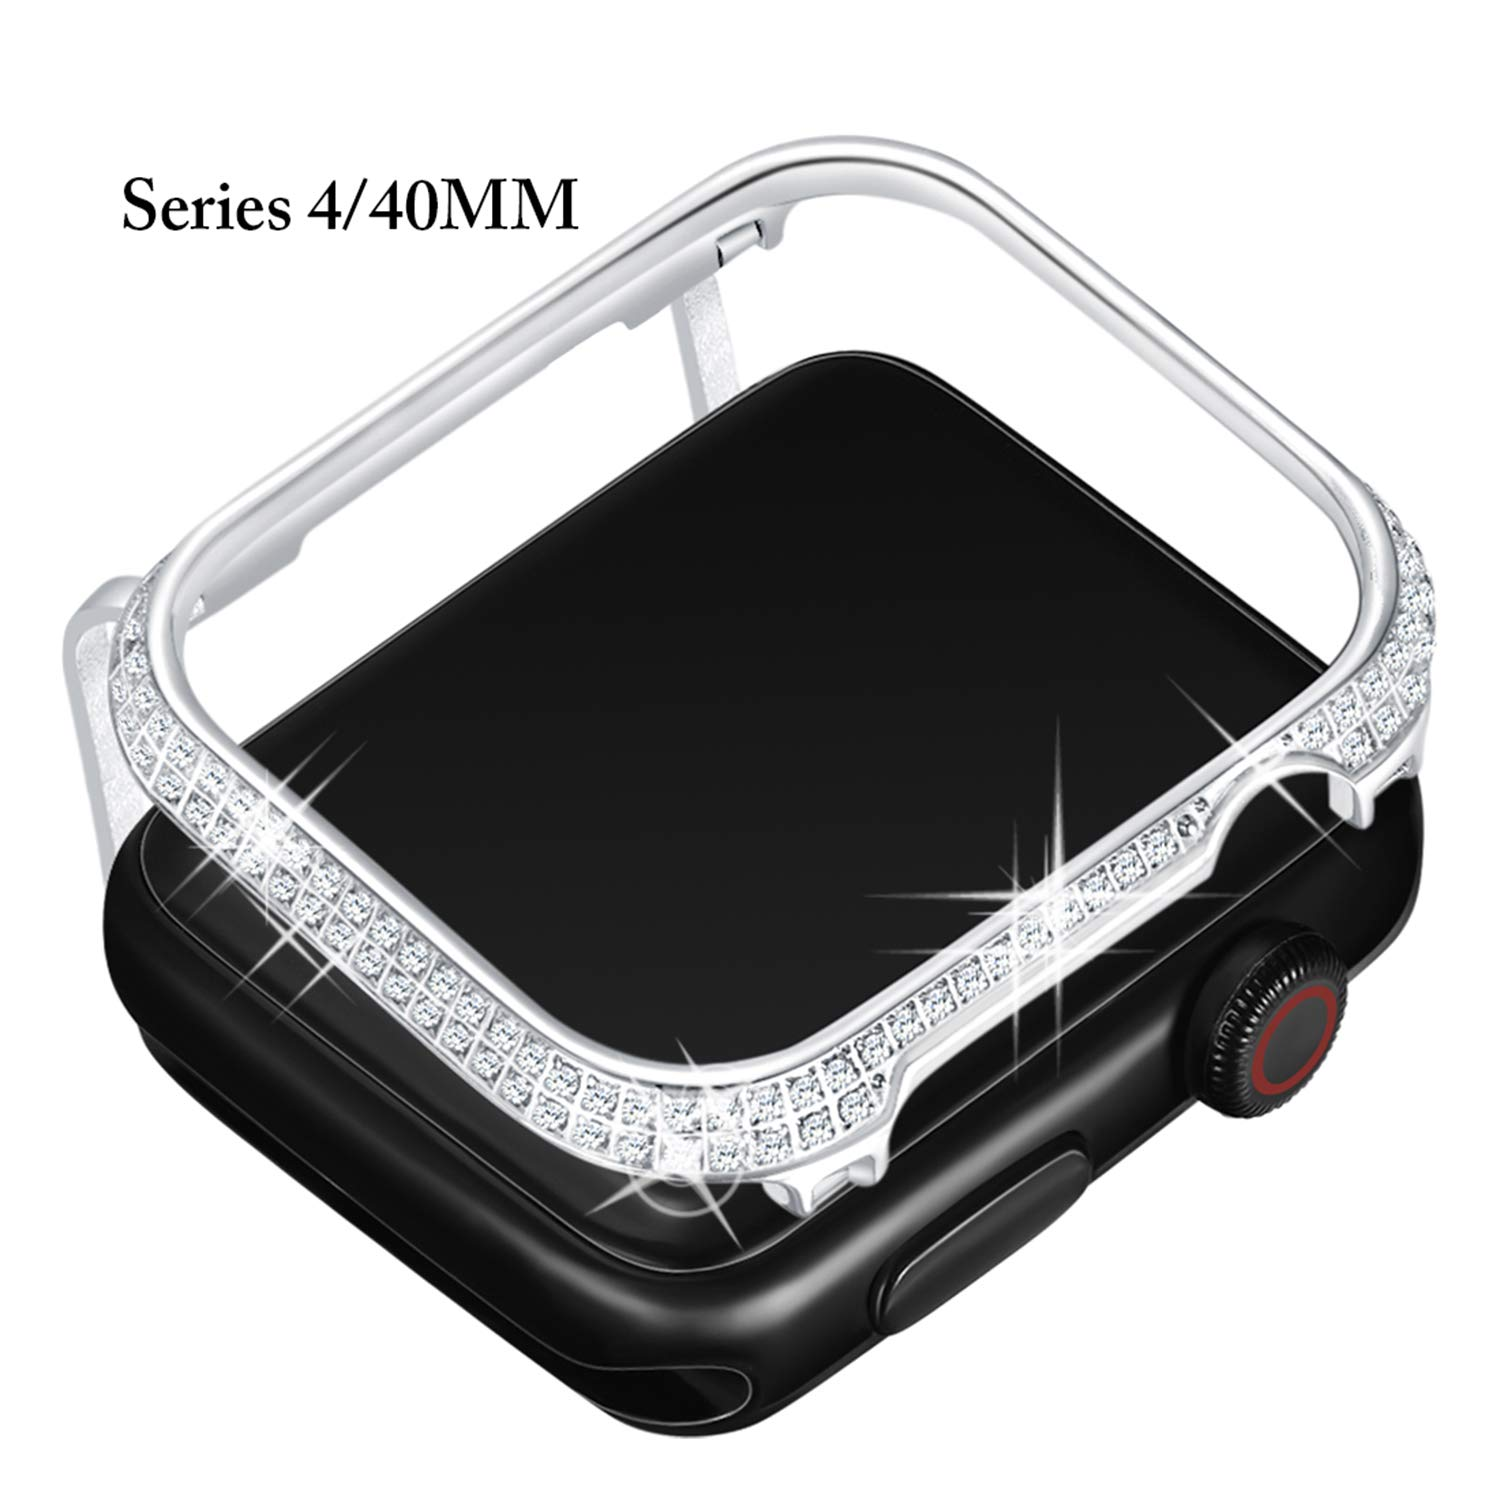 Callancity Metal Rhinestone Crystal Diamond Jewelry Decorative Bezel case face Plate Cover Protective Frame Compatible Apple Watch 40mm Series 4 White Crystals for Men/Women (40MM Platinum)